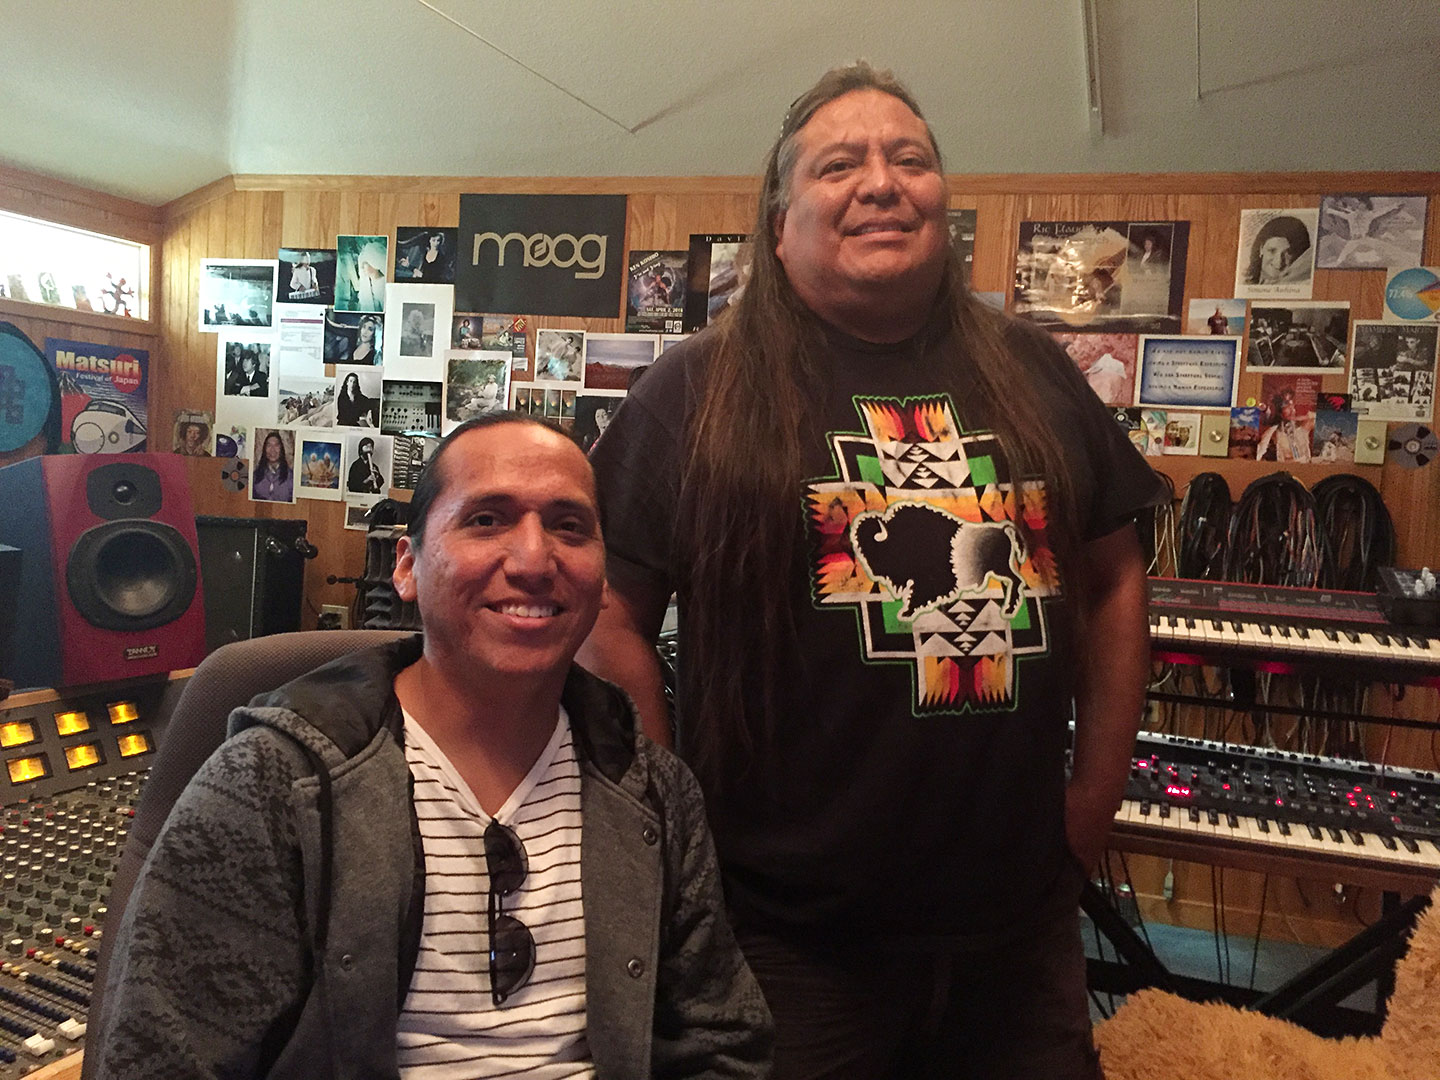 Invincible Recordings Studio Phoenix Tony-Duncan with Lowery Begay image